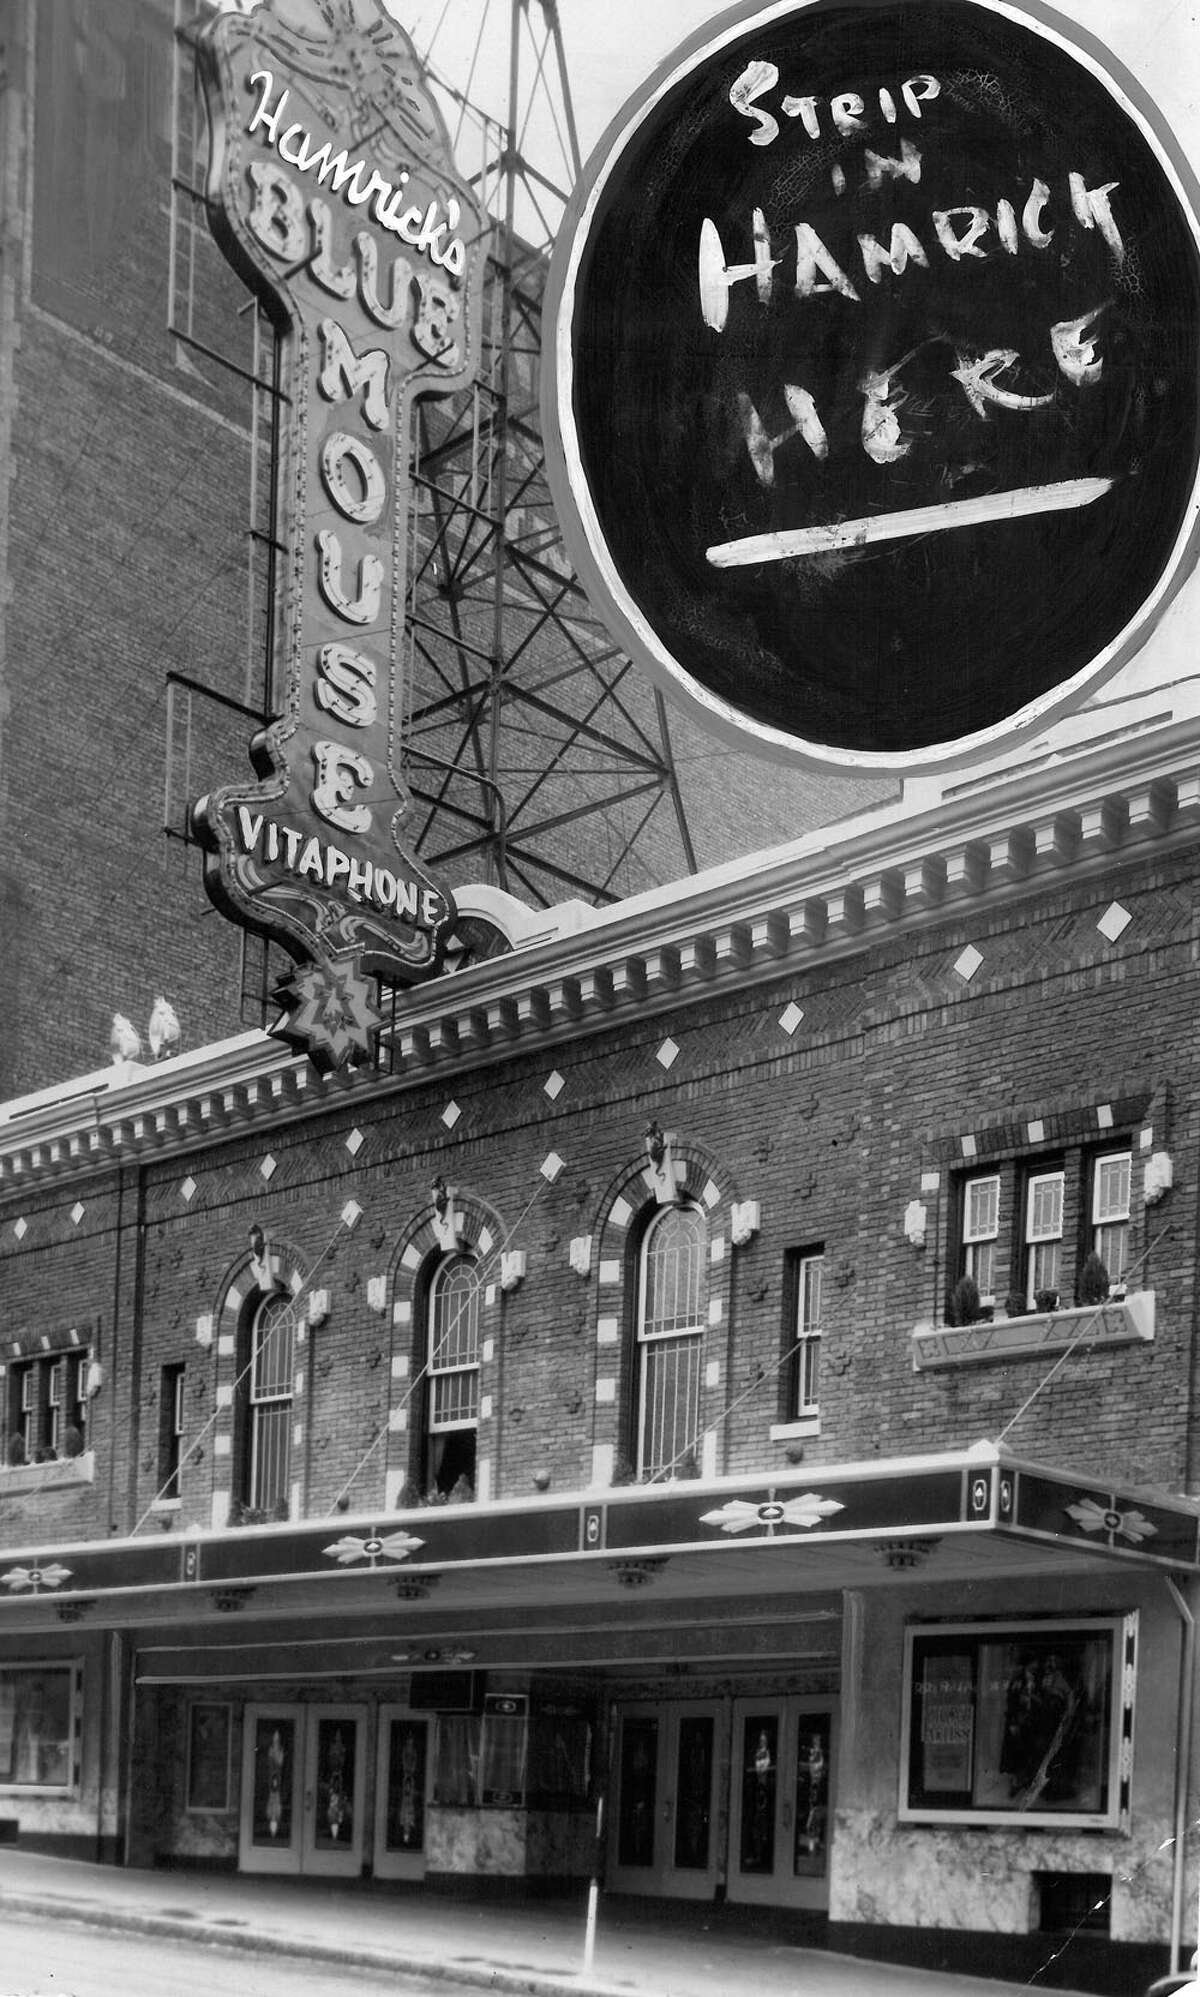 The Blue Mouse Theatre at 1421 5th Ave. was the first place in Seattle to show a regular talking movie. This P-I archive photo isn't dated.